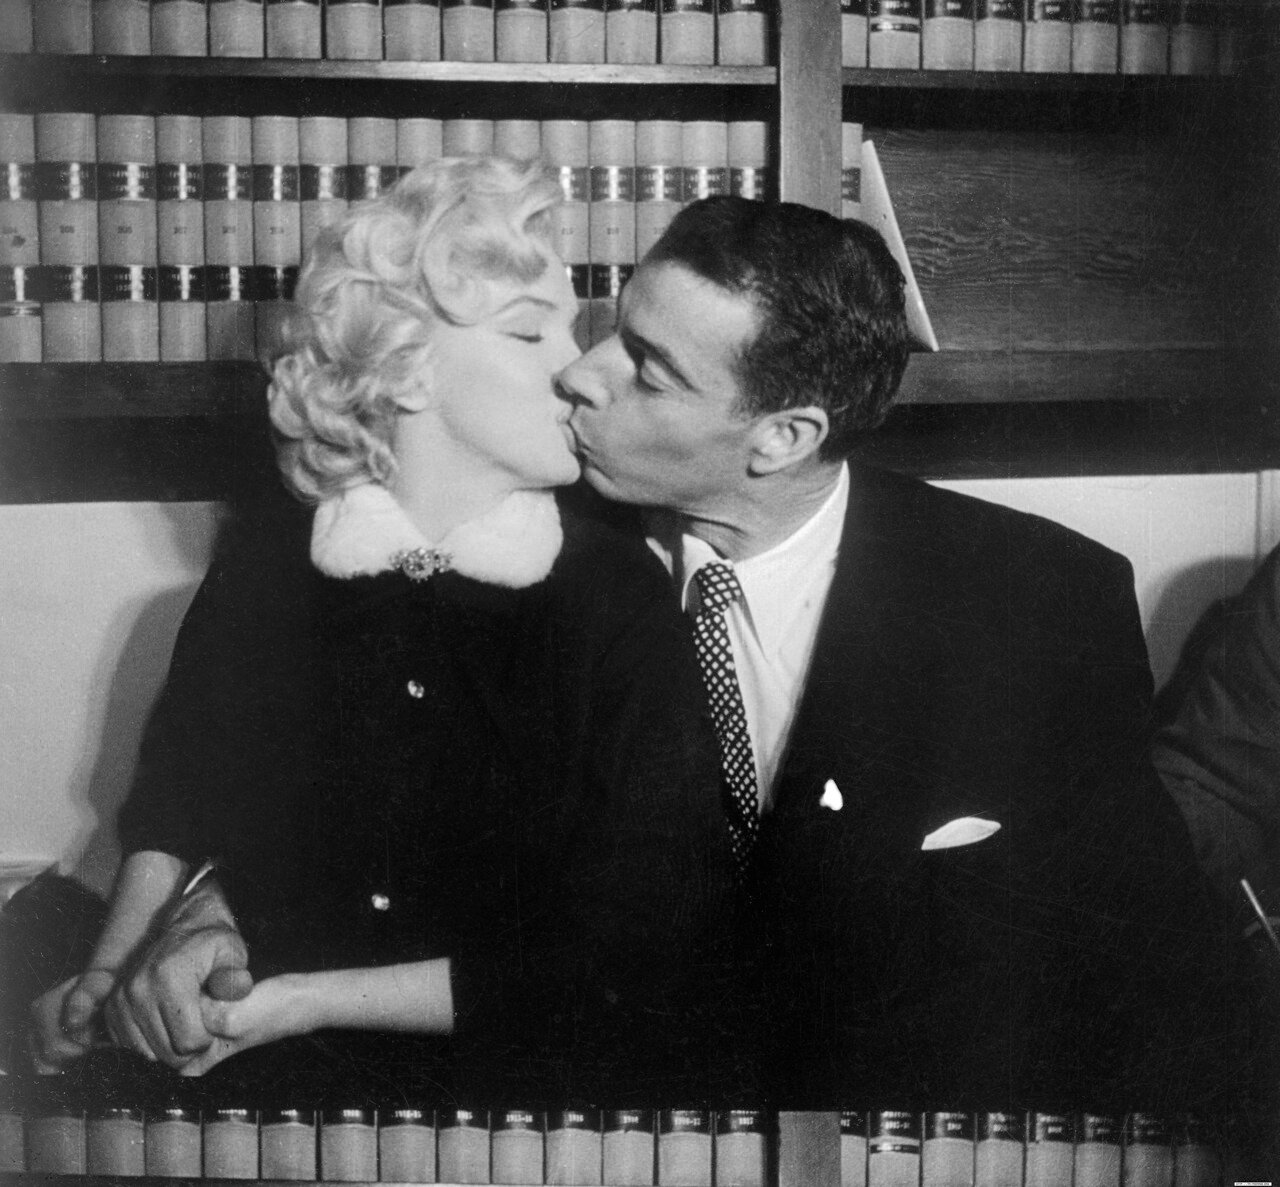 Marilyn Monroe Kissing Joe DiMaggio